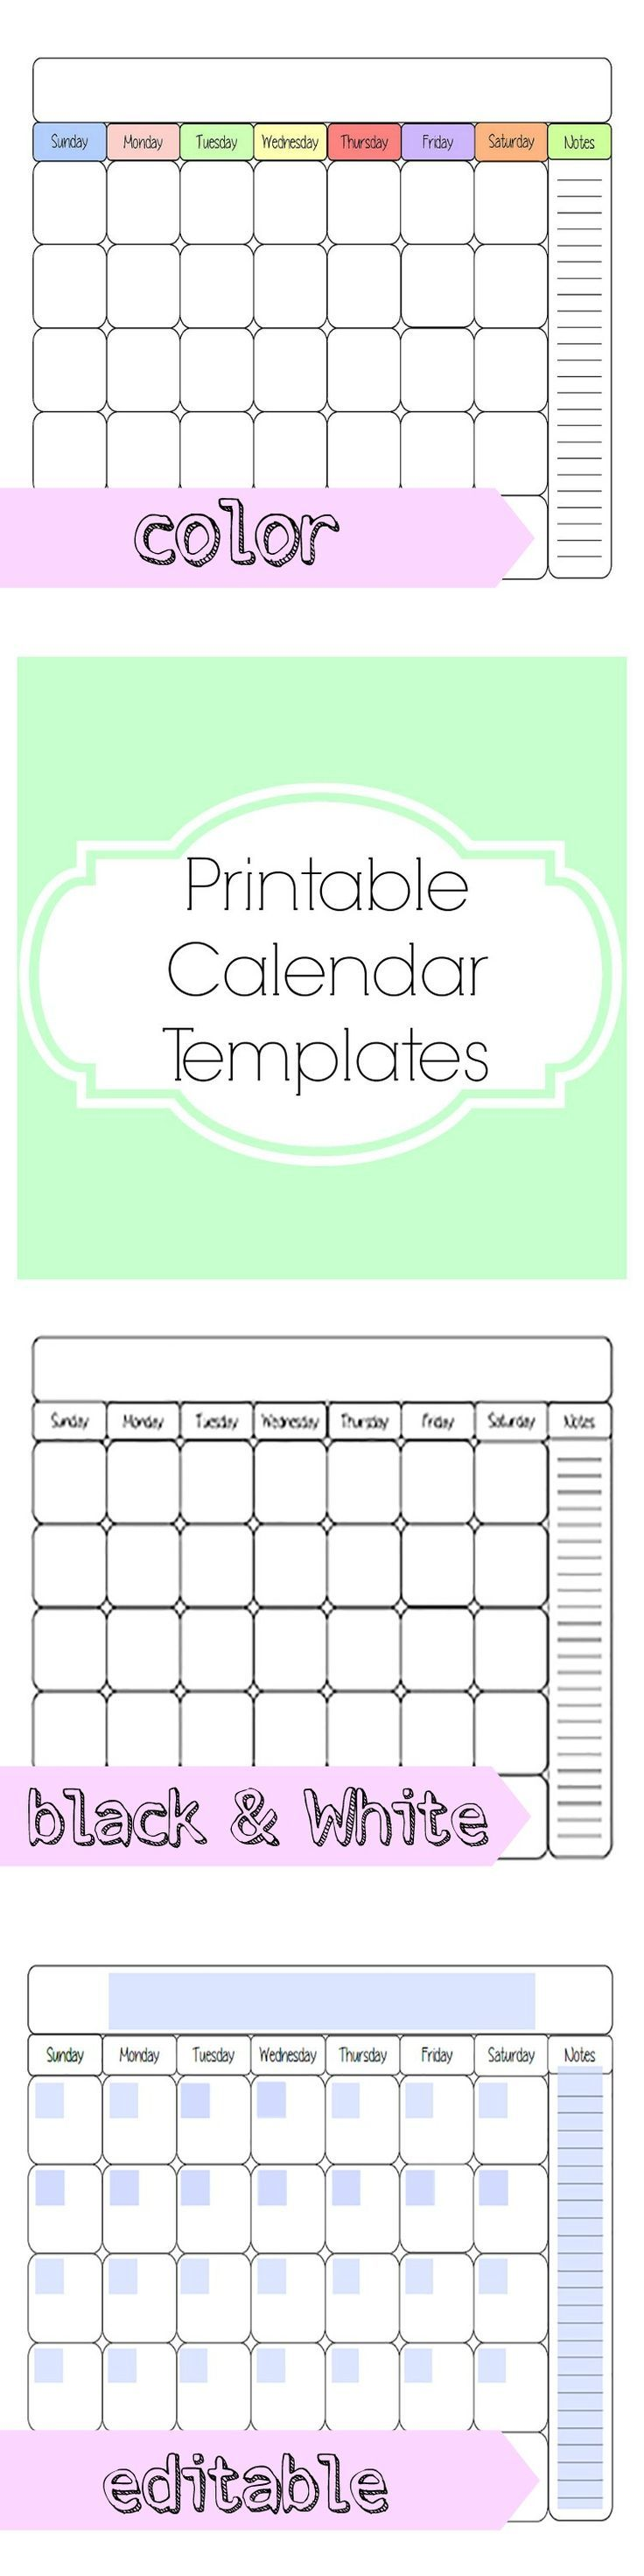 Free Printable Calendar Template | Planners, Organizations and Template